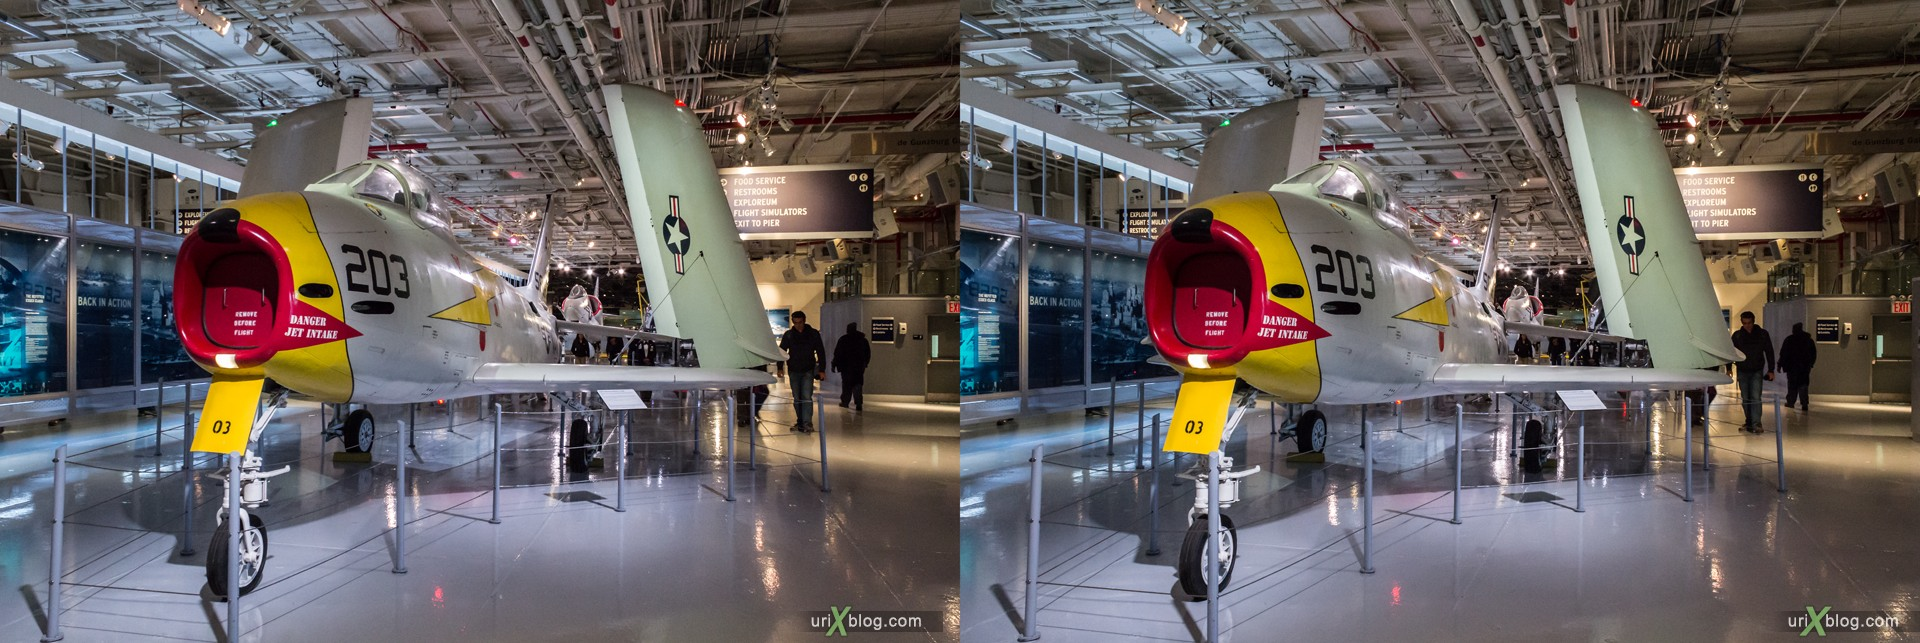 2013, USA, NYC, New York, aircraft carrier Intrepid museum, FJ-3 Fury, sea, air, space, ship, submarine, aircraft, airplane, helicopter, military, 3D, stereo pair, cross-eyed, crossview, cross view stereo pair, stereoscopic